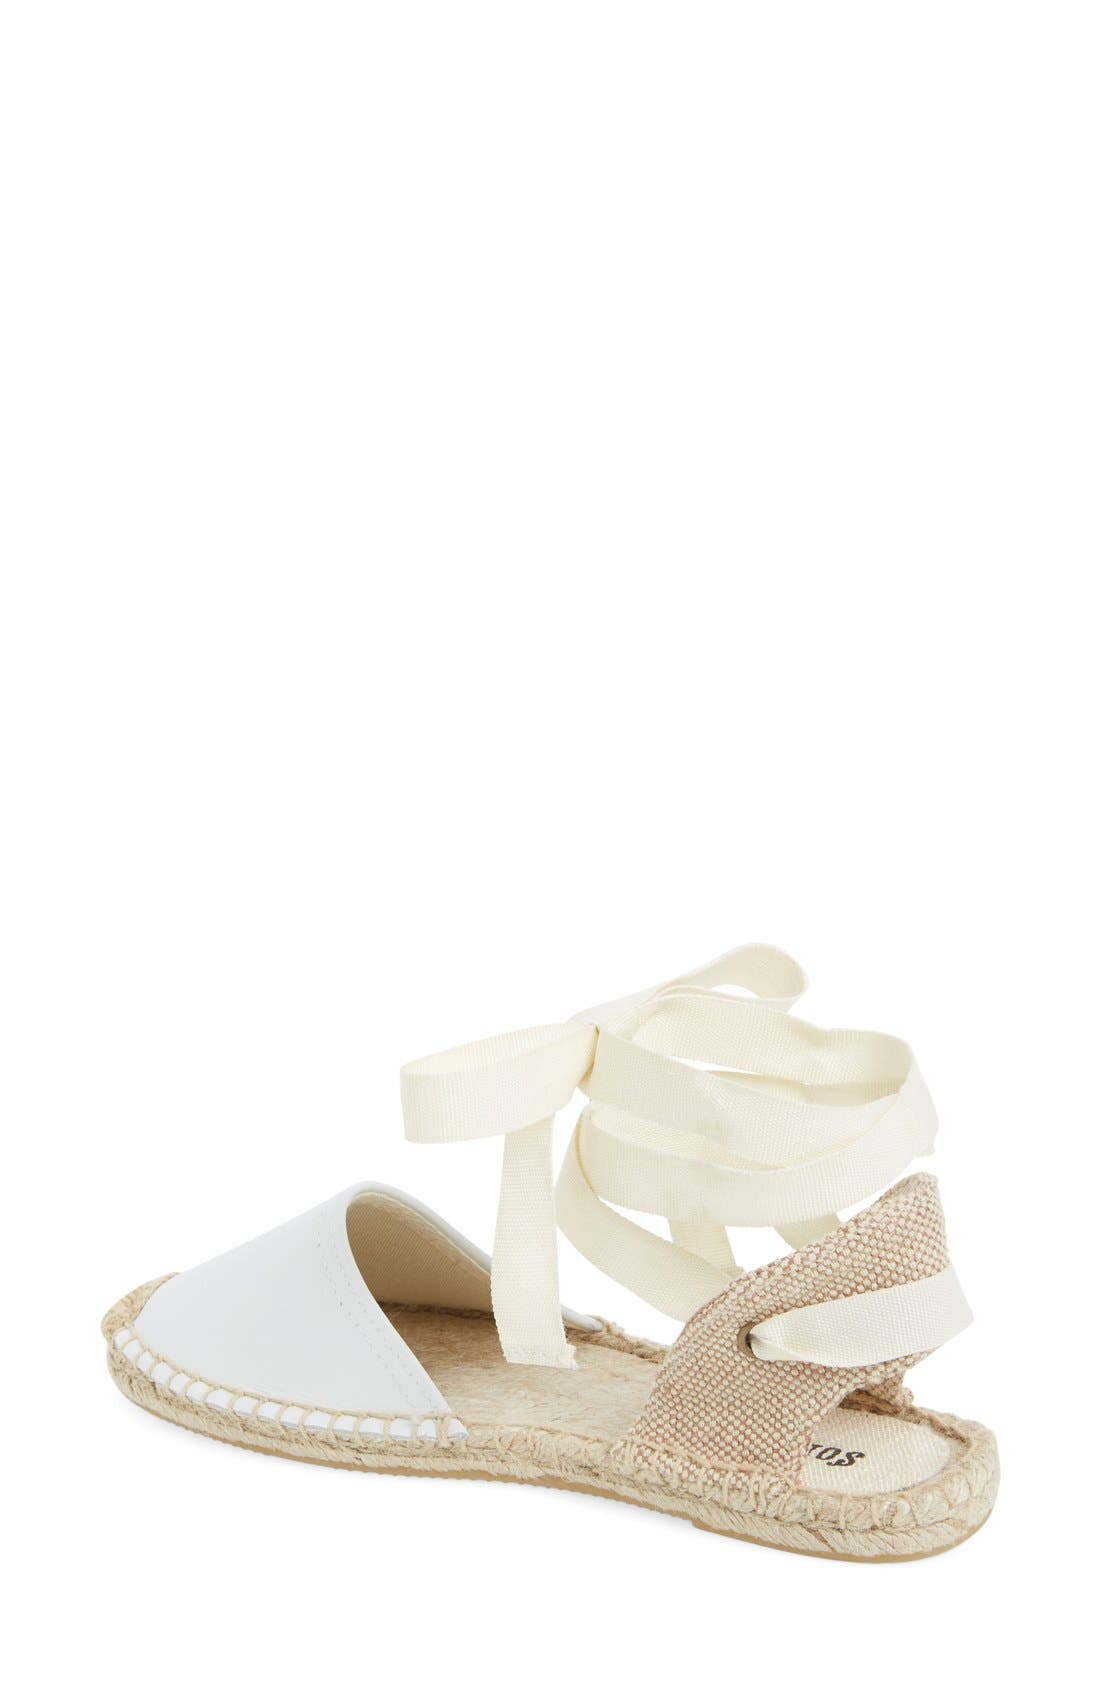 Espadrille Sandal,                             Alternate thumbnail 2, color,                             White